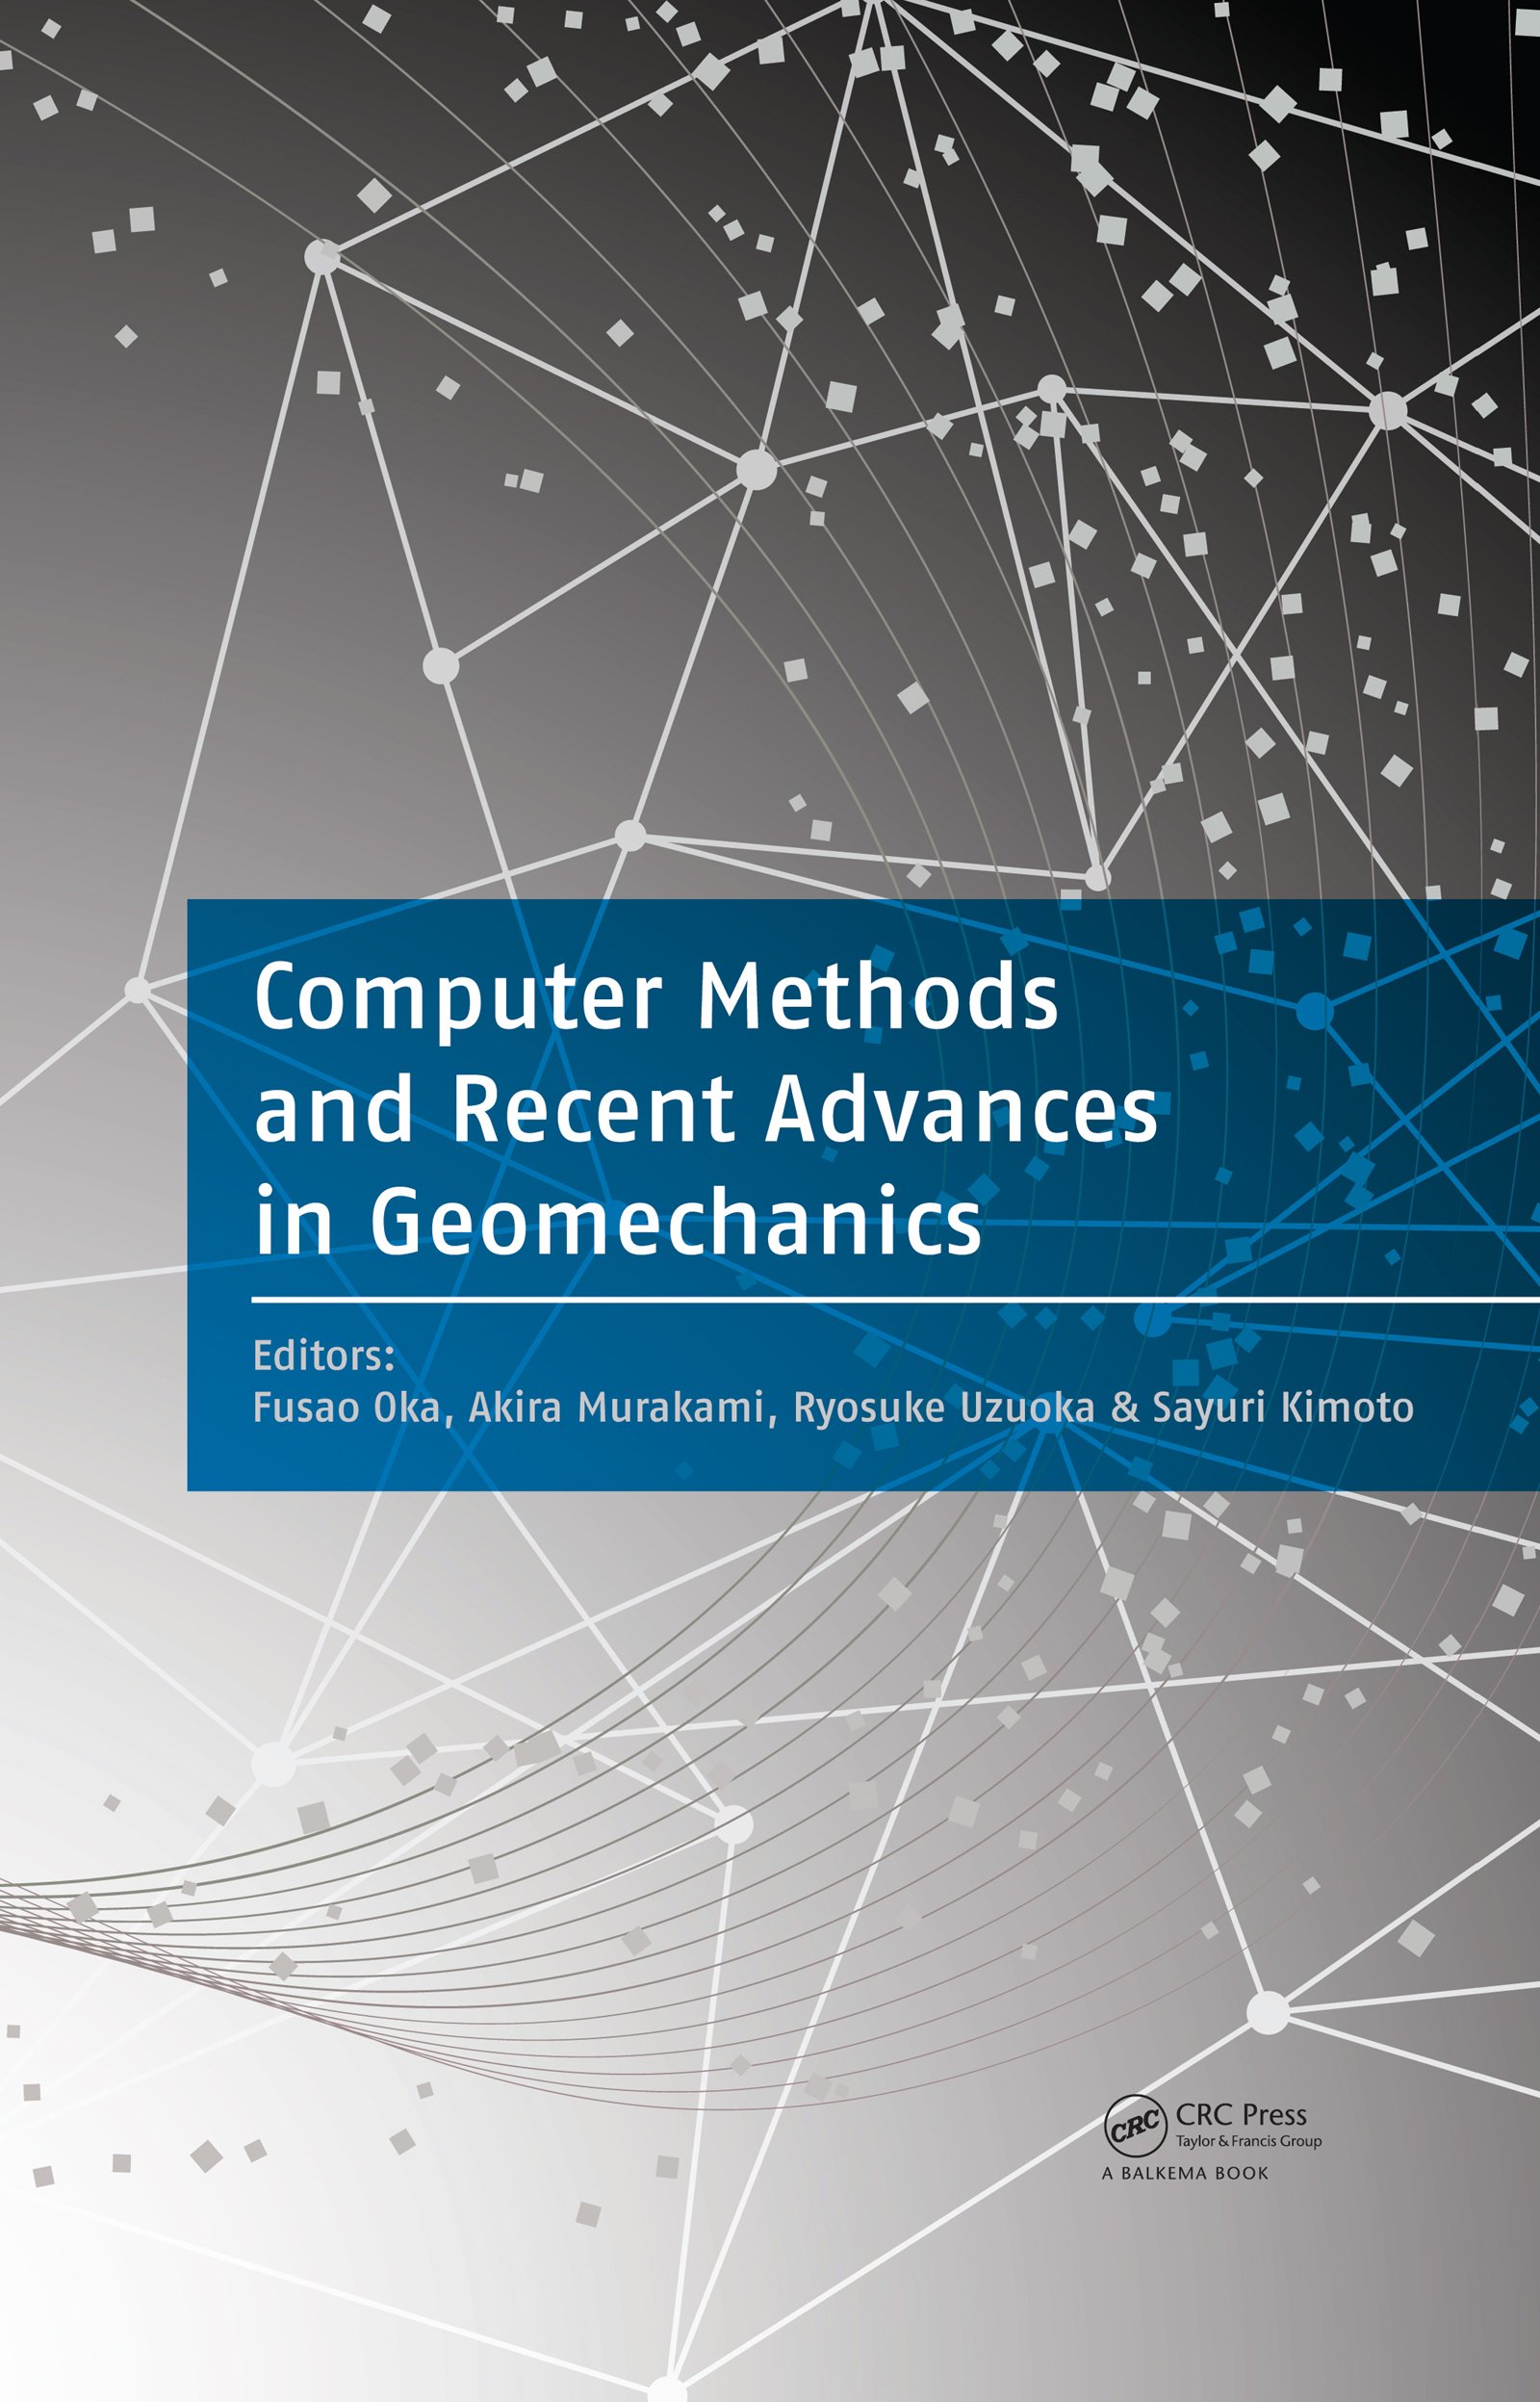 Computer Methods and Recent Advances in Geomechanics: 1st Edition (Pack - Book and CD) book cover